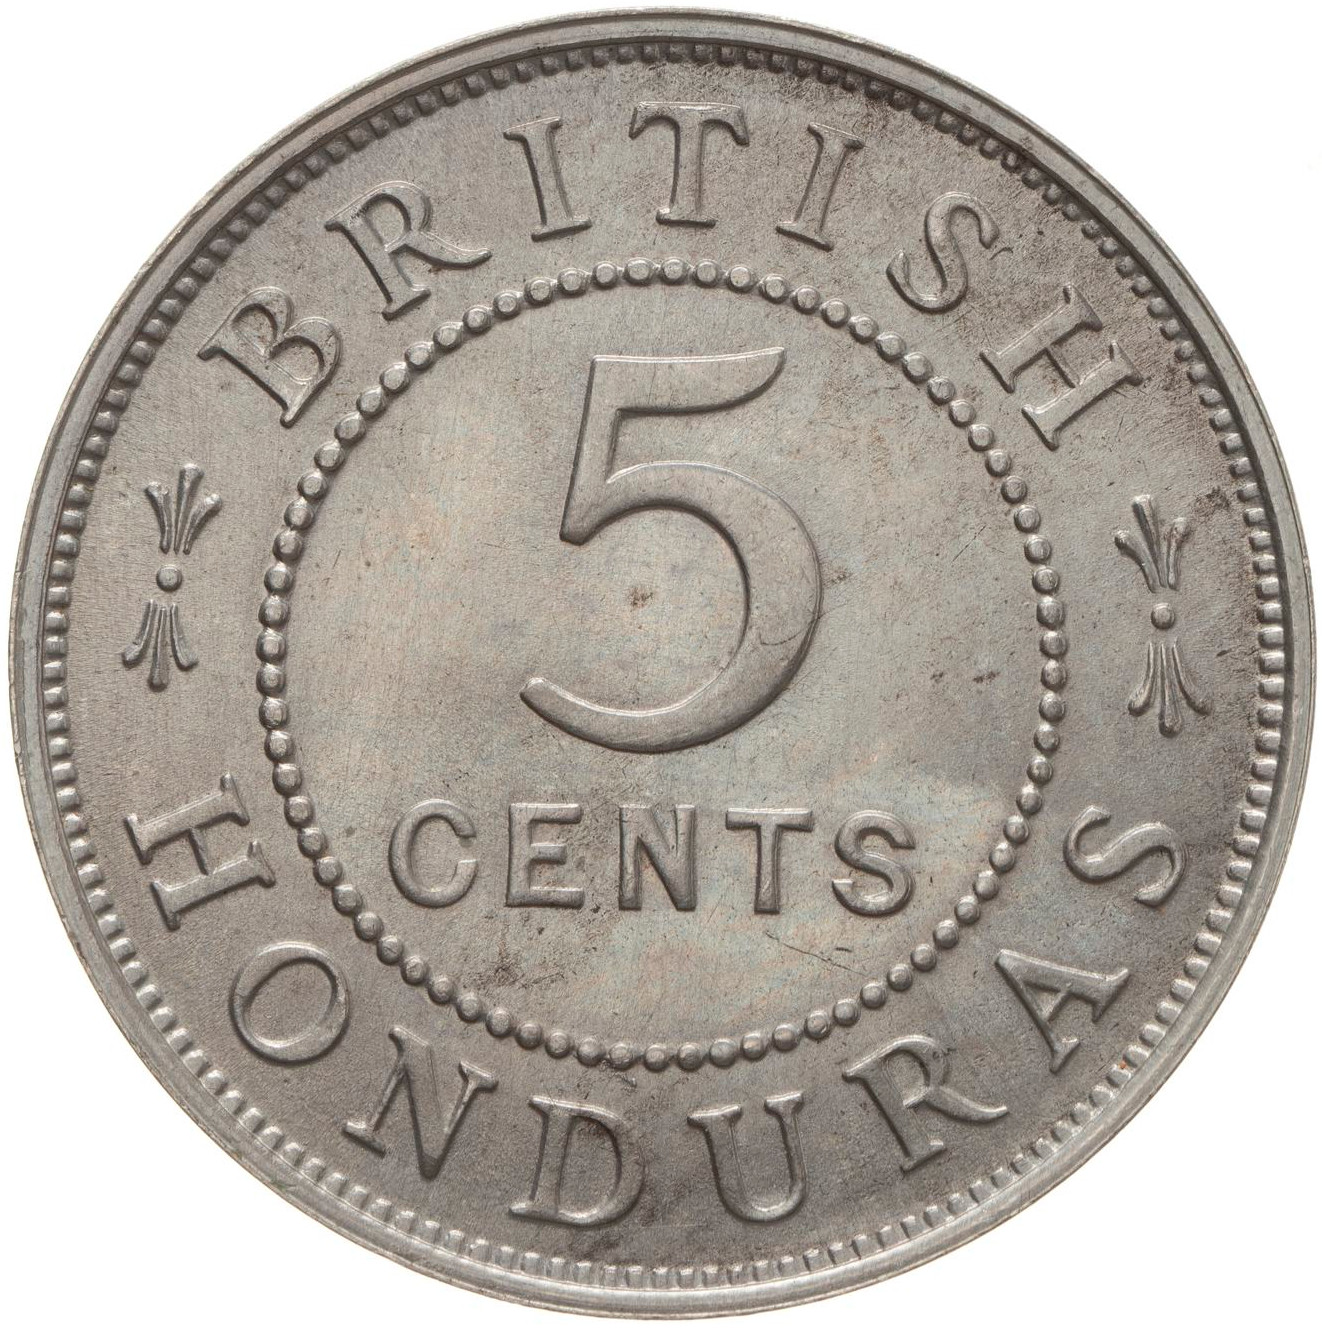 Five Cents 1919: Photo Coin - 5 Cents, British Honduras (Belize), 1919